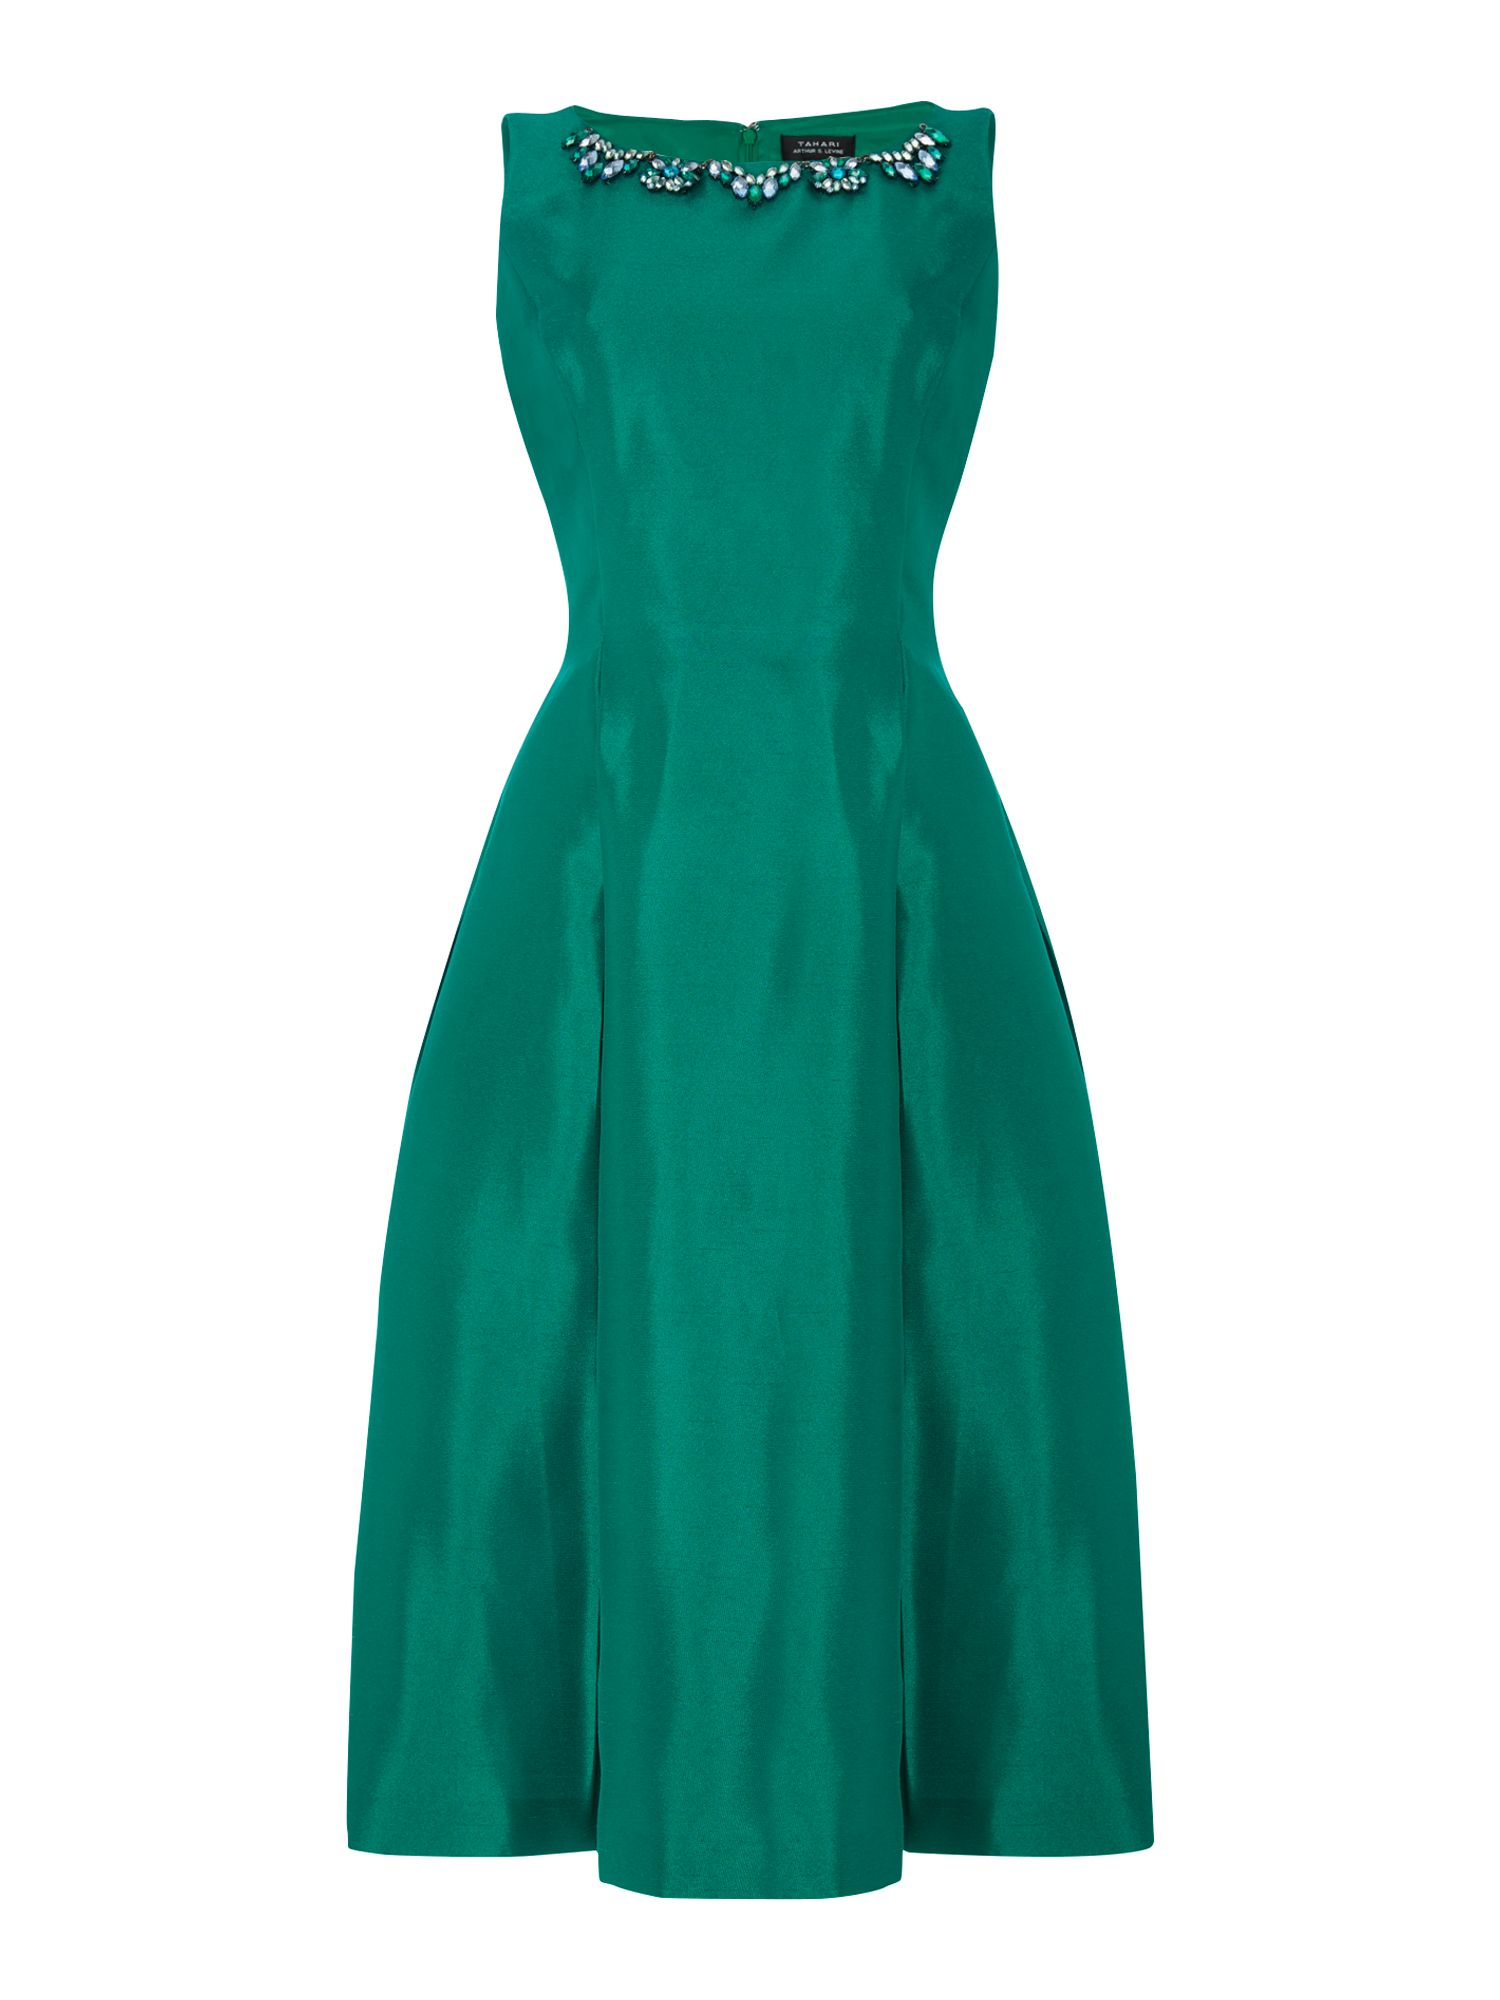 Tahari ASL Fit and Flare Embelished Dress, Emerald